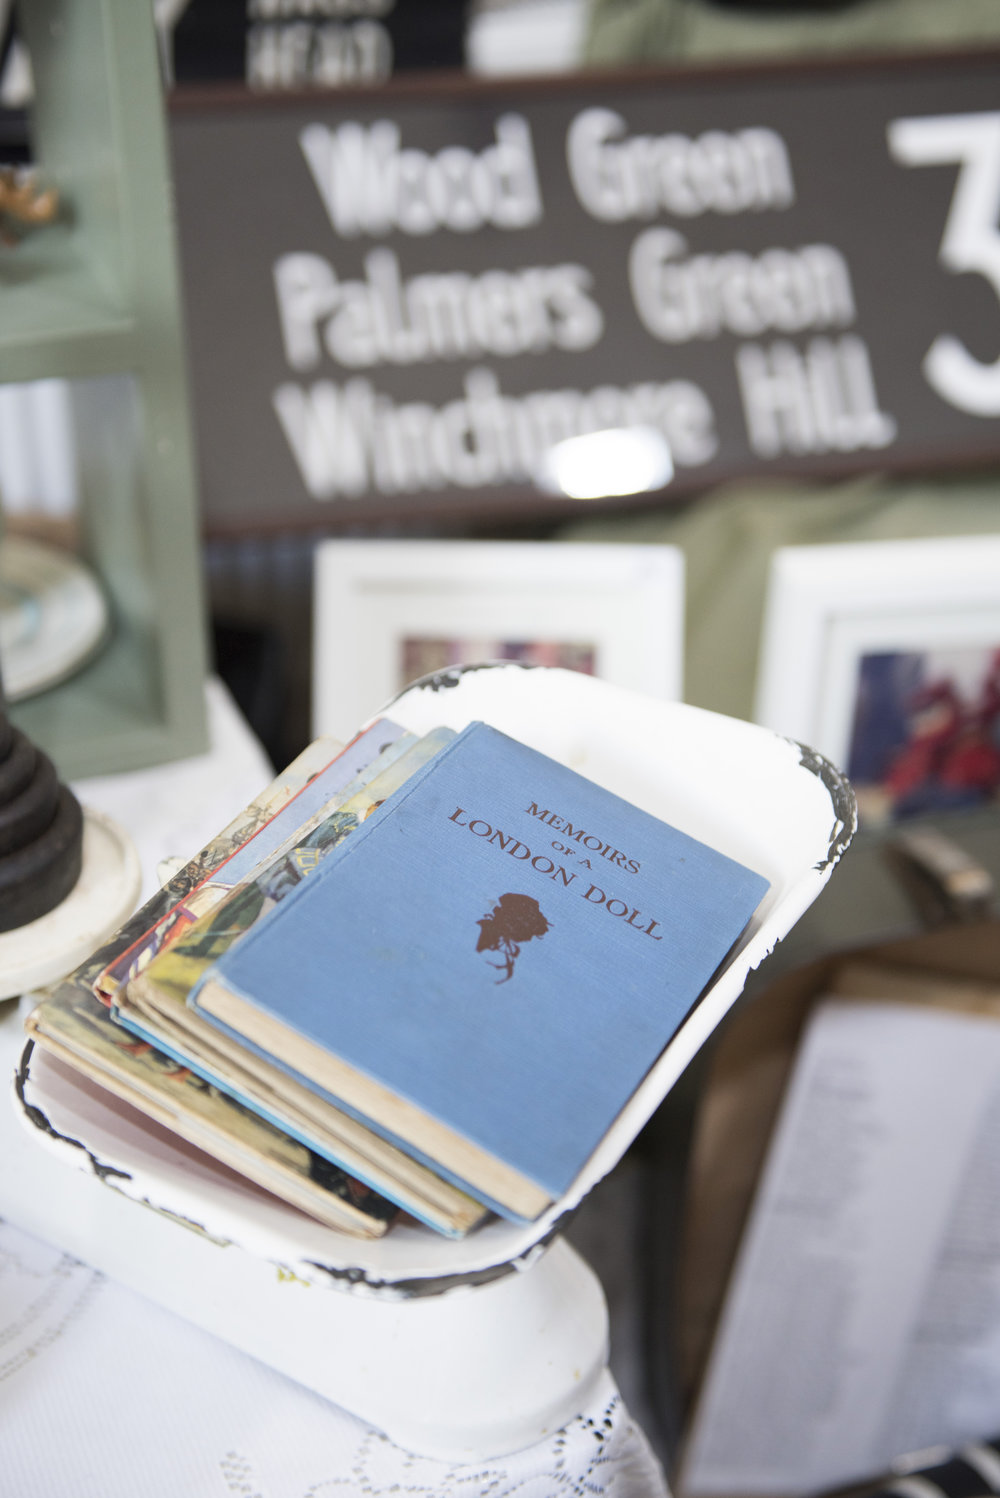 Vintage books tempting shoppers on the stall of @so_sally_vintage as well as her ever popular bus blinds